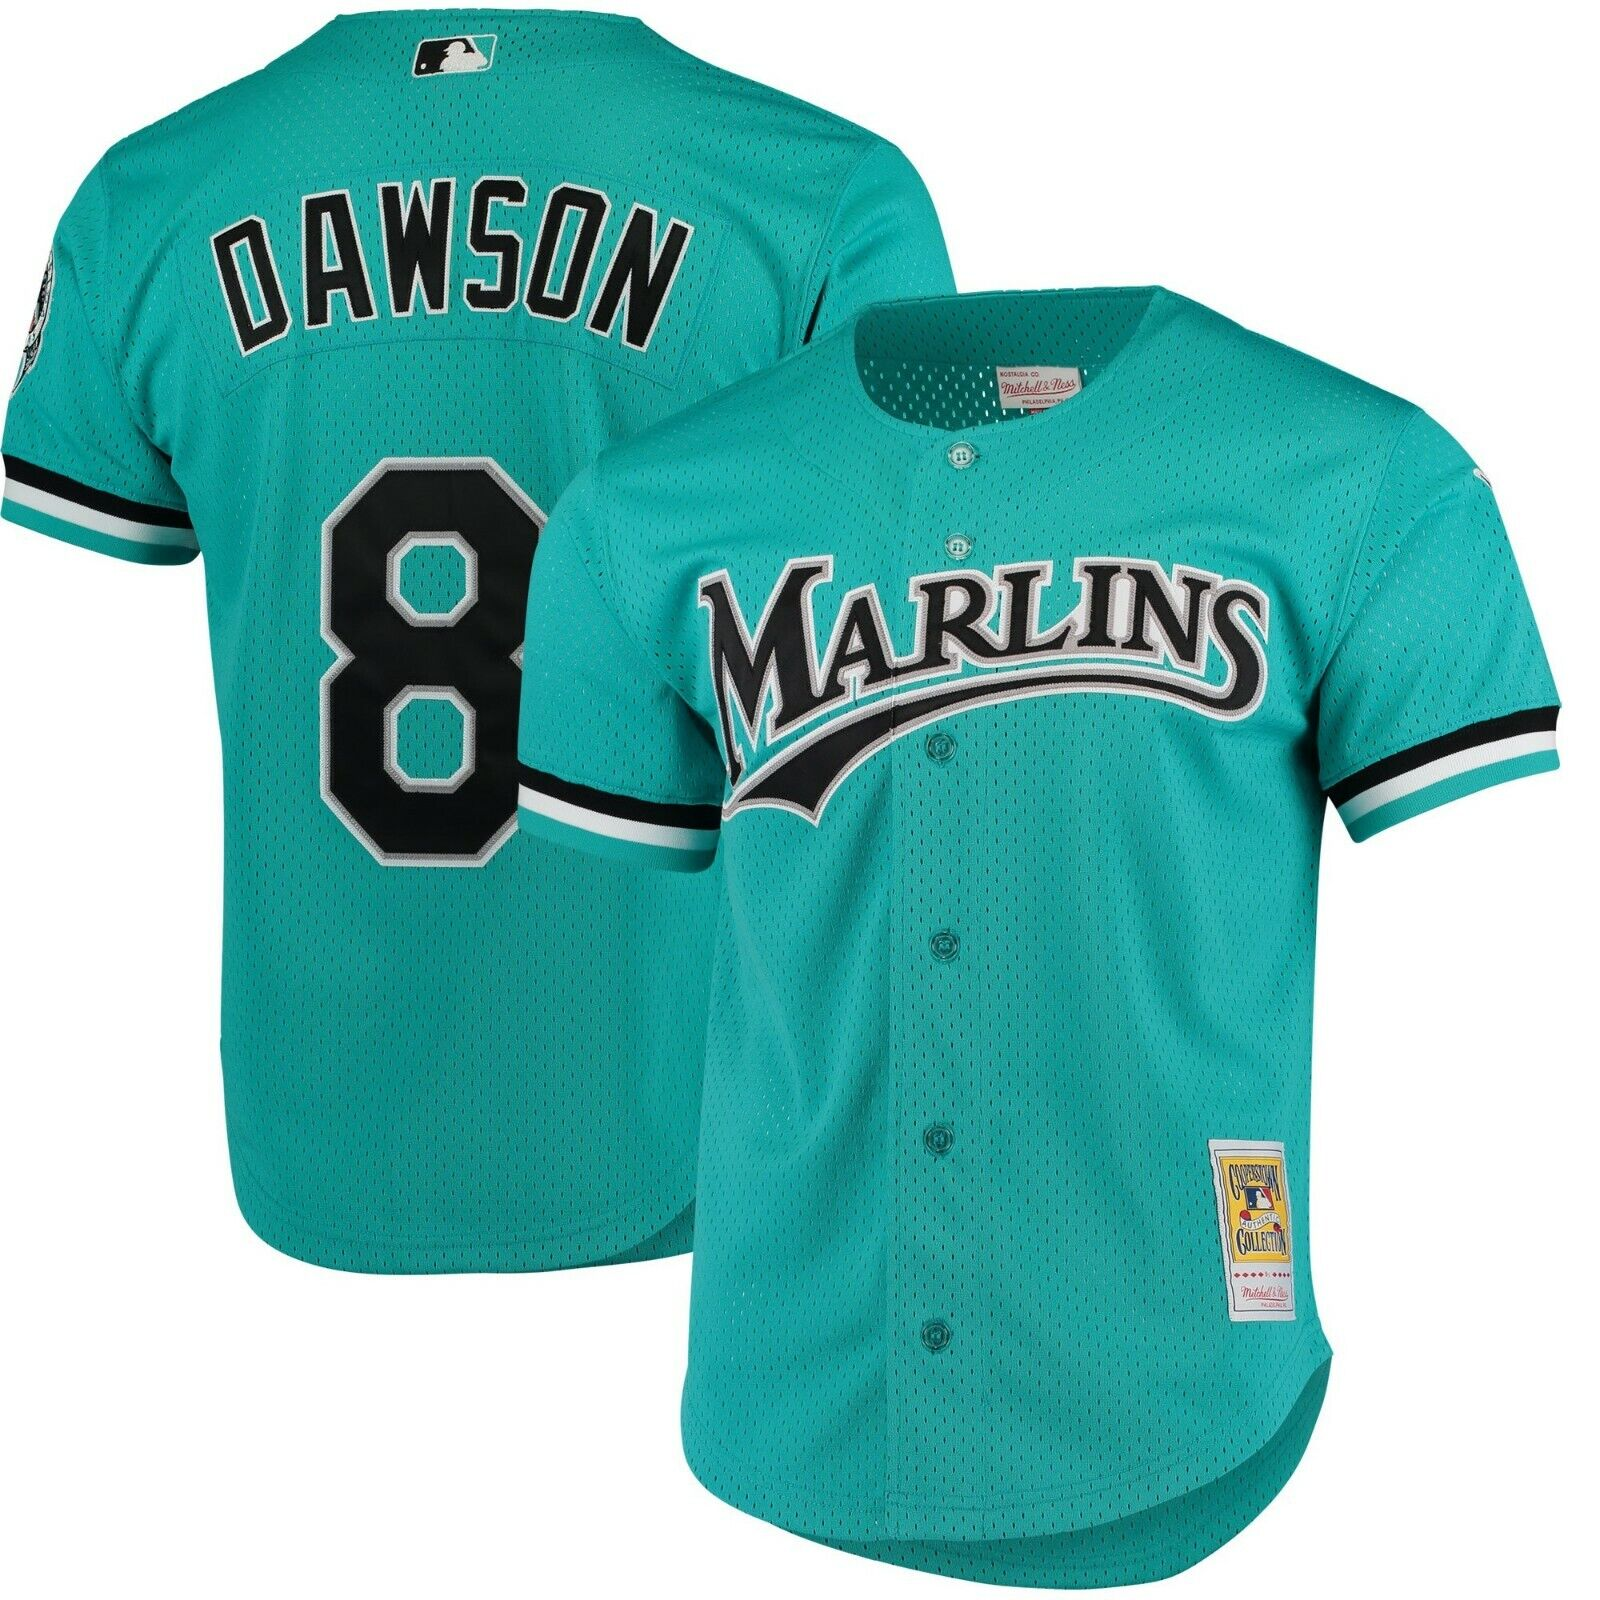 1d9c9887 Details about Florida Marlins Andre Dawson Mitchell & Ness Teal Full-button  front Mesh Jersey